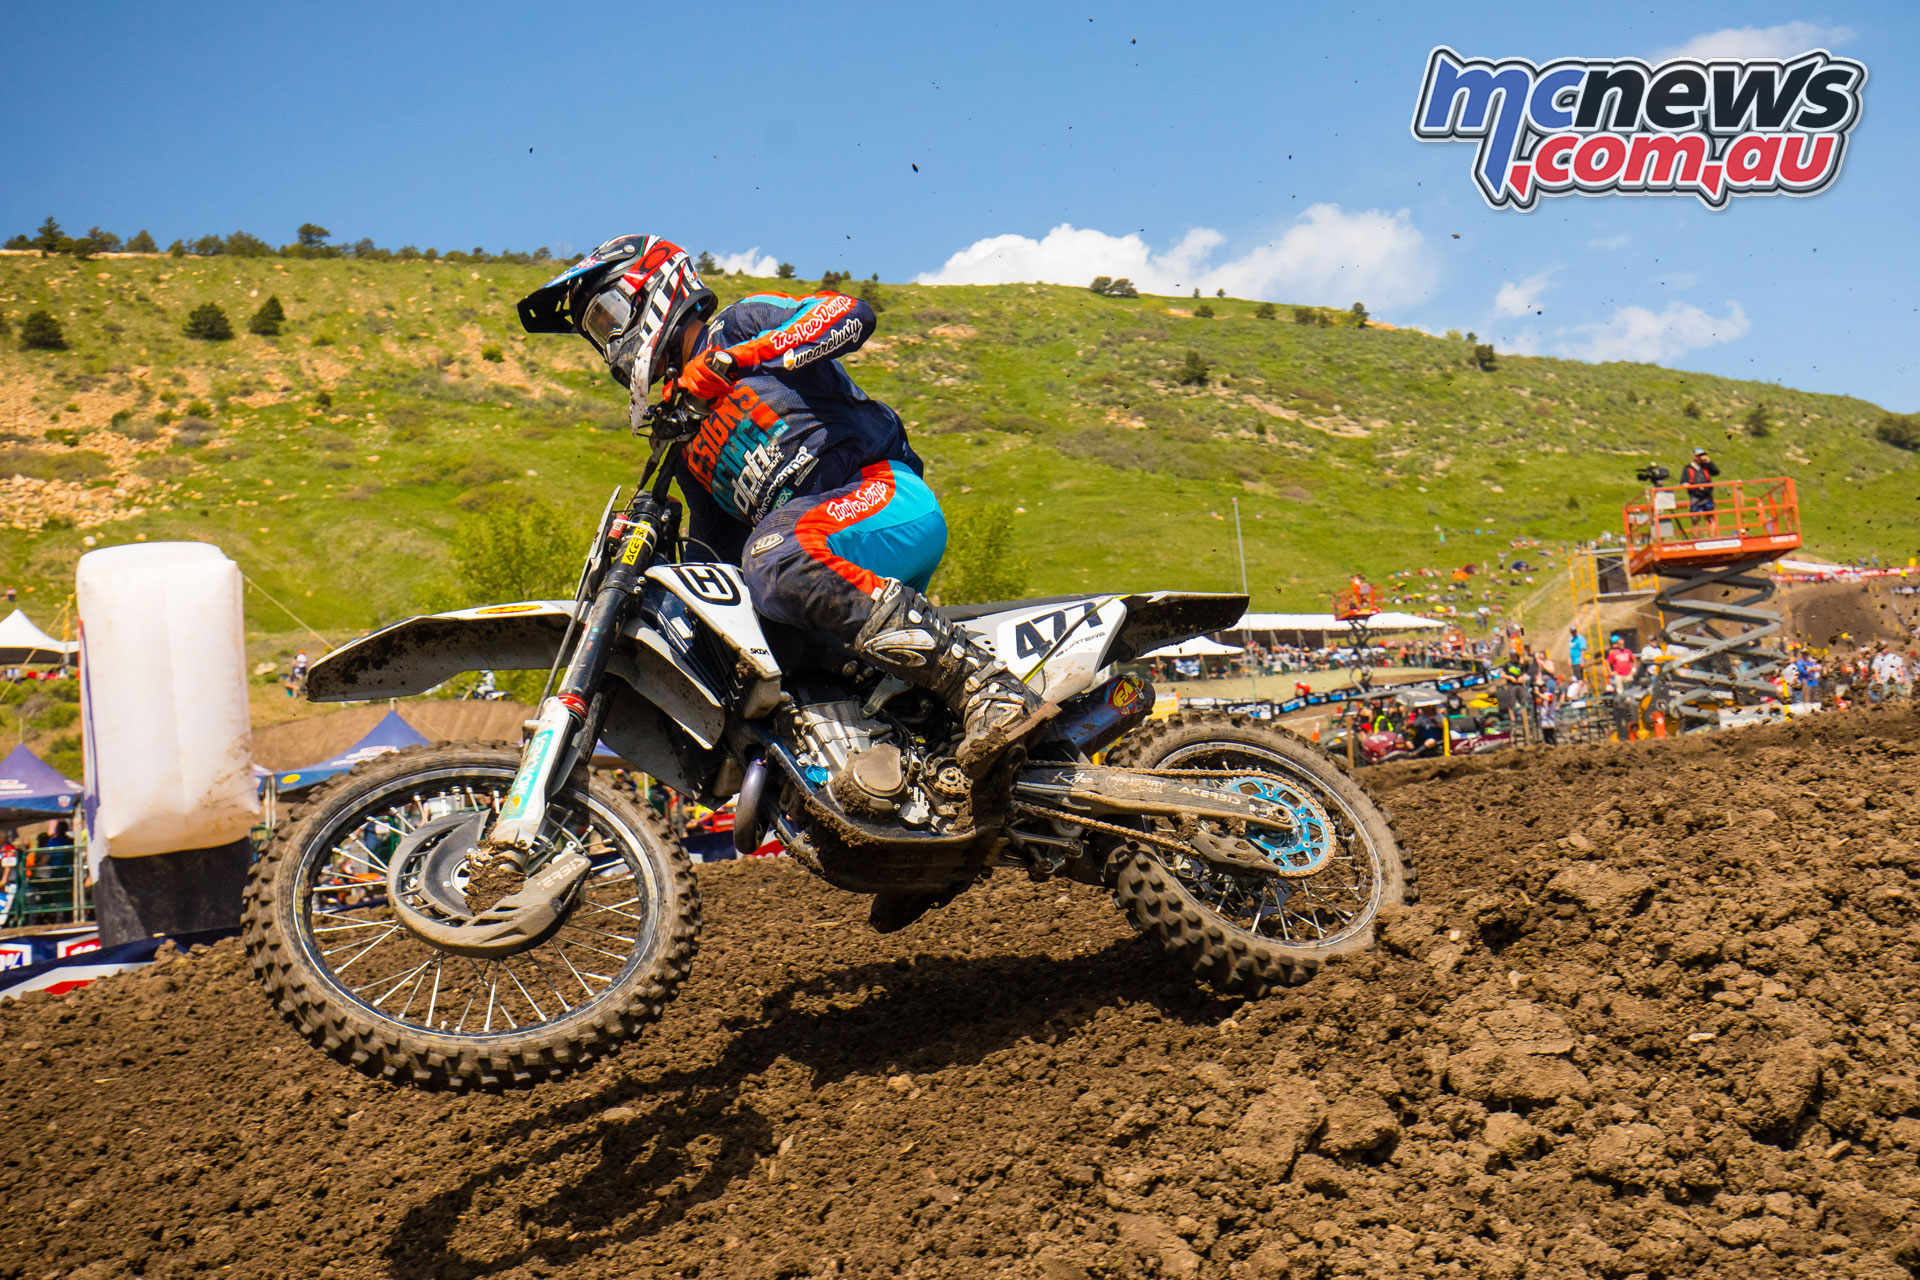 AMA MX Rnd Thunder Valley Todd Waters Privateers JK MX Lakewood